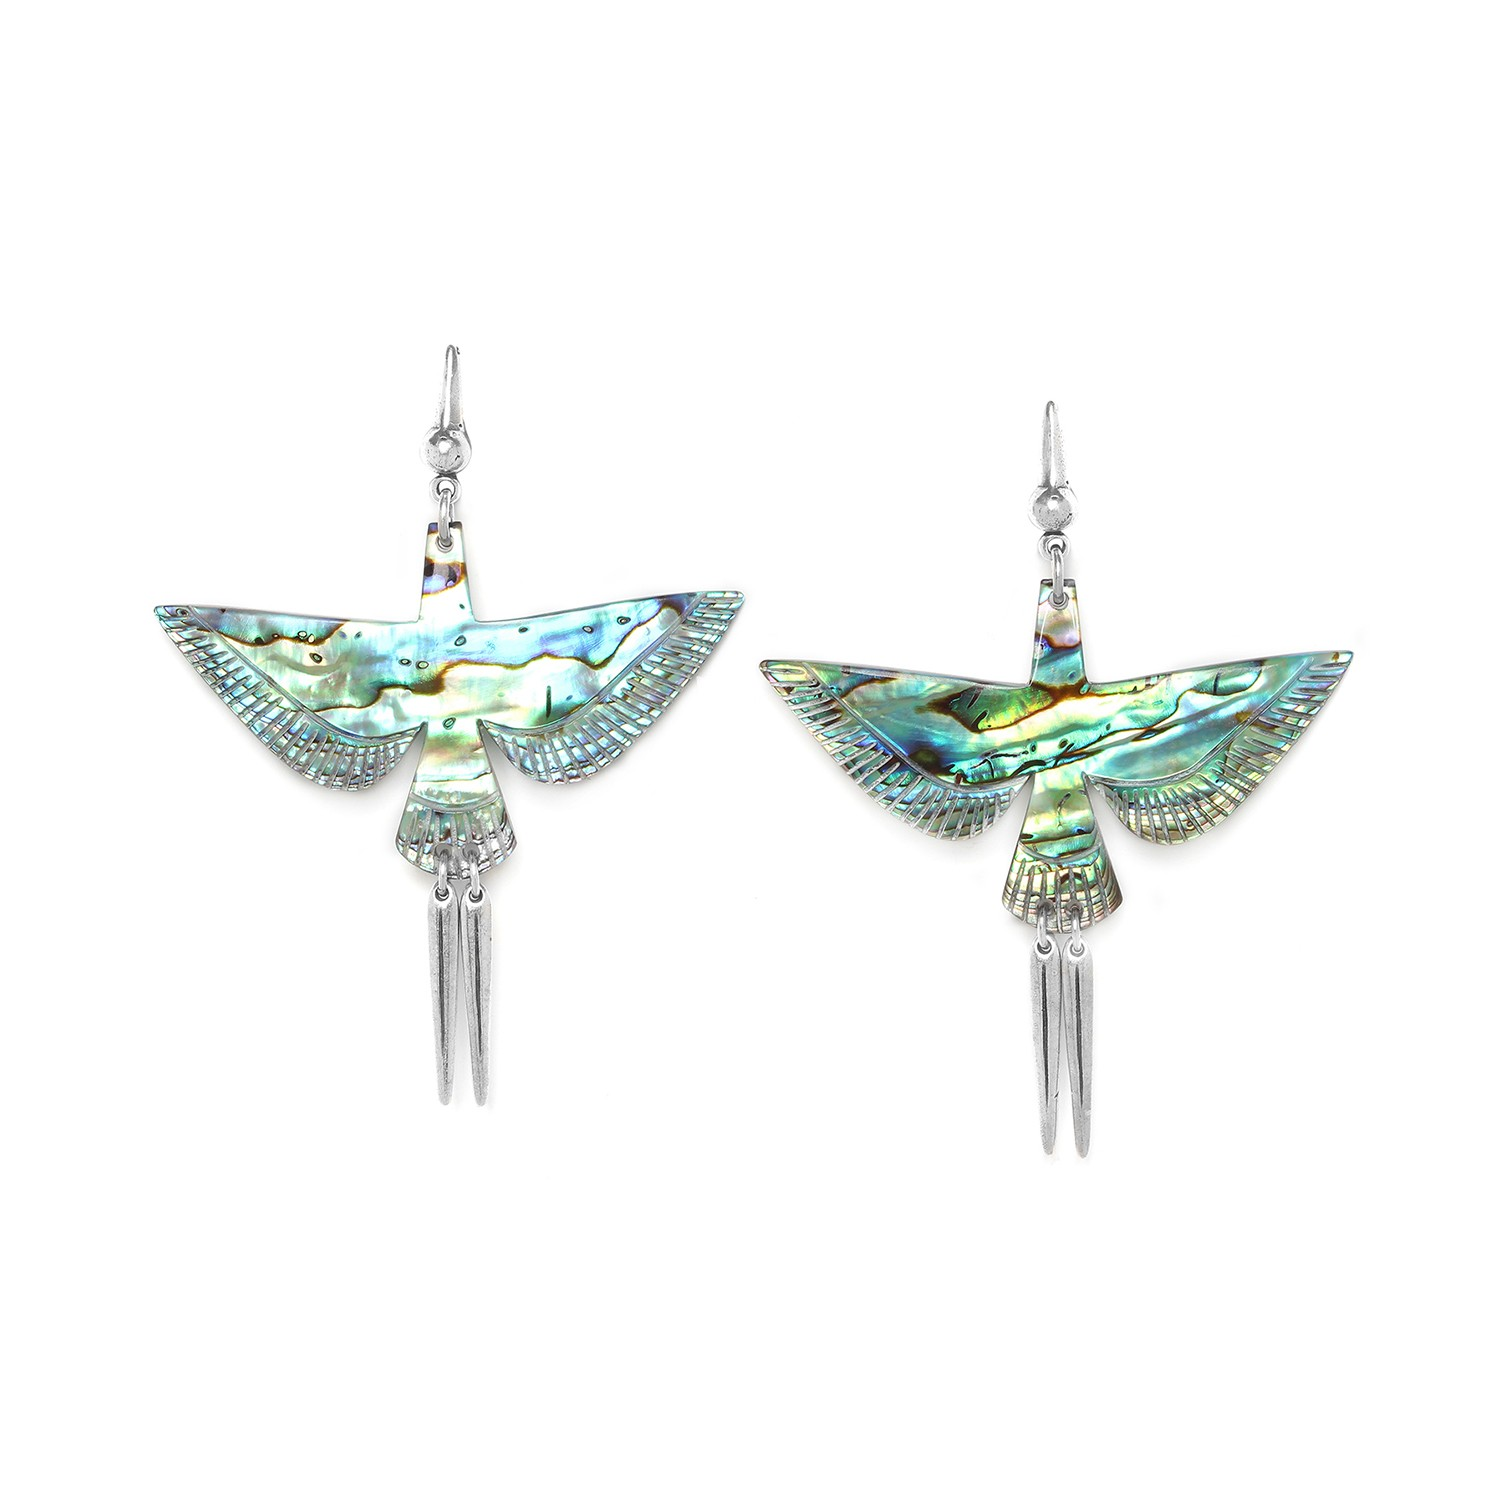 ENVOL Paua bird earrings